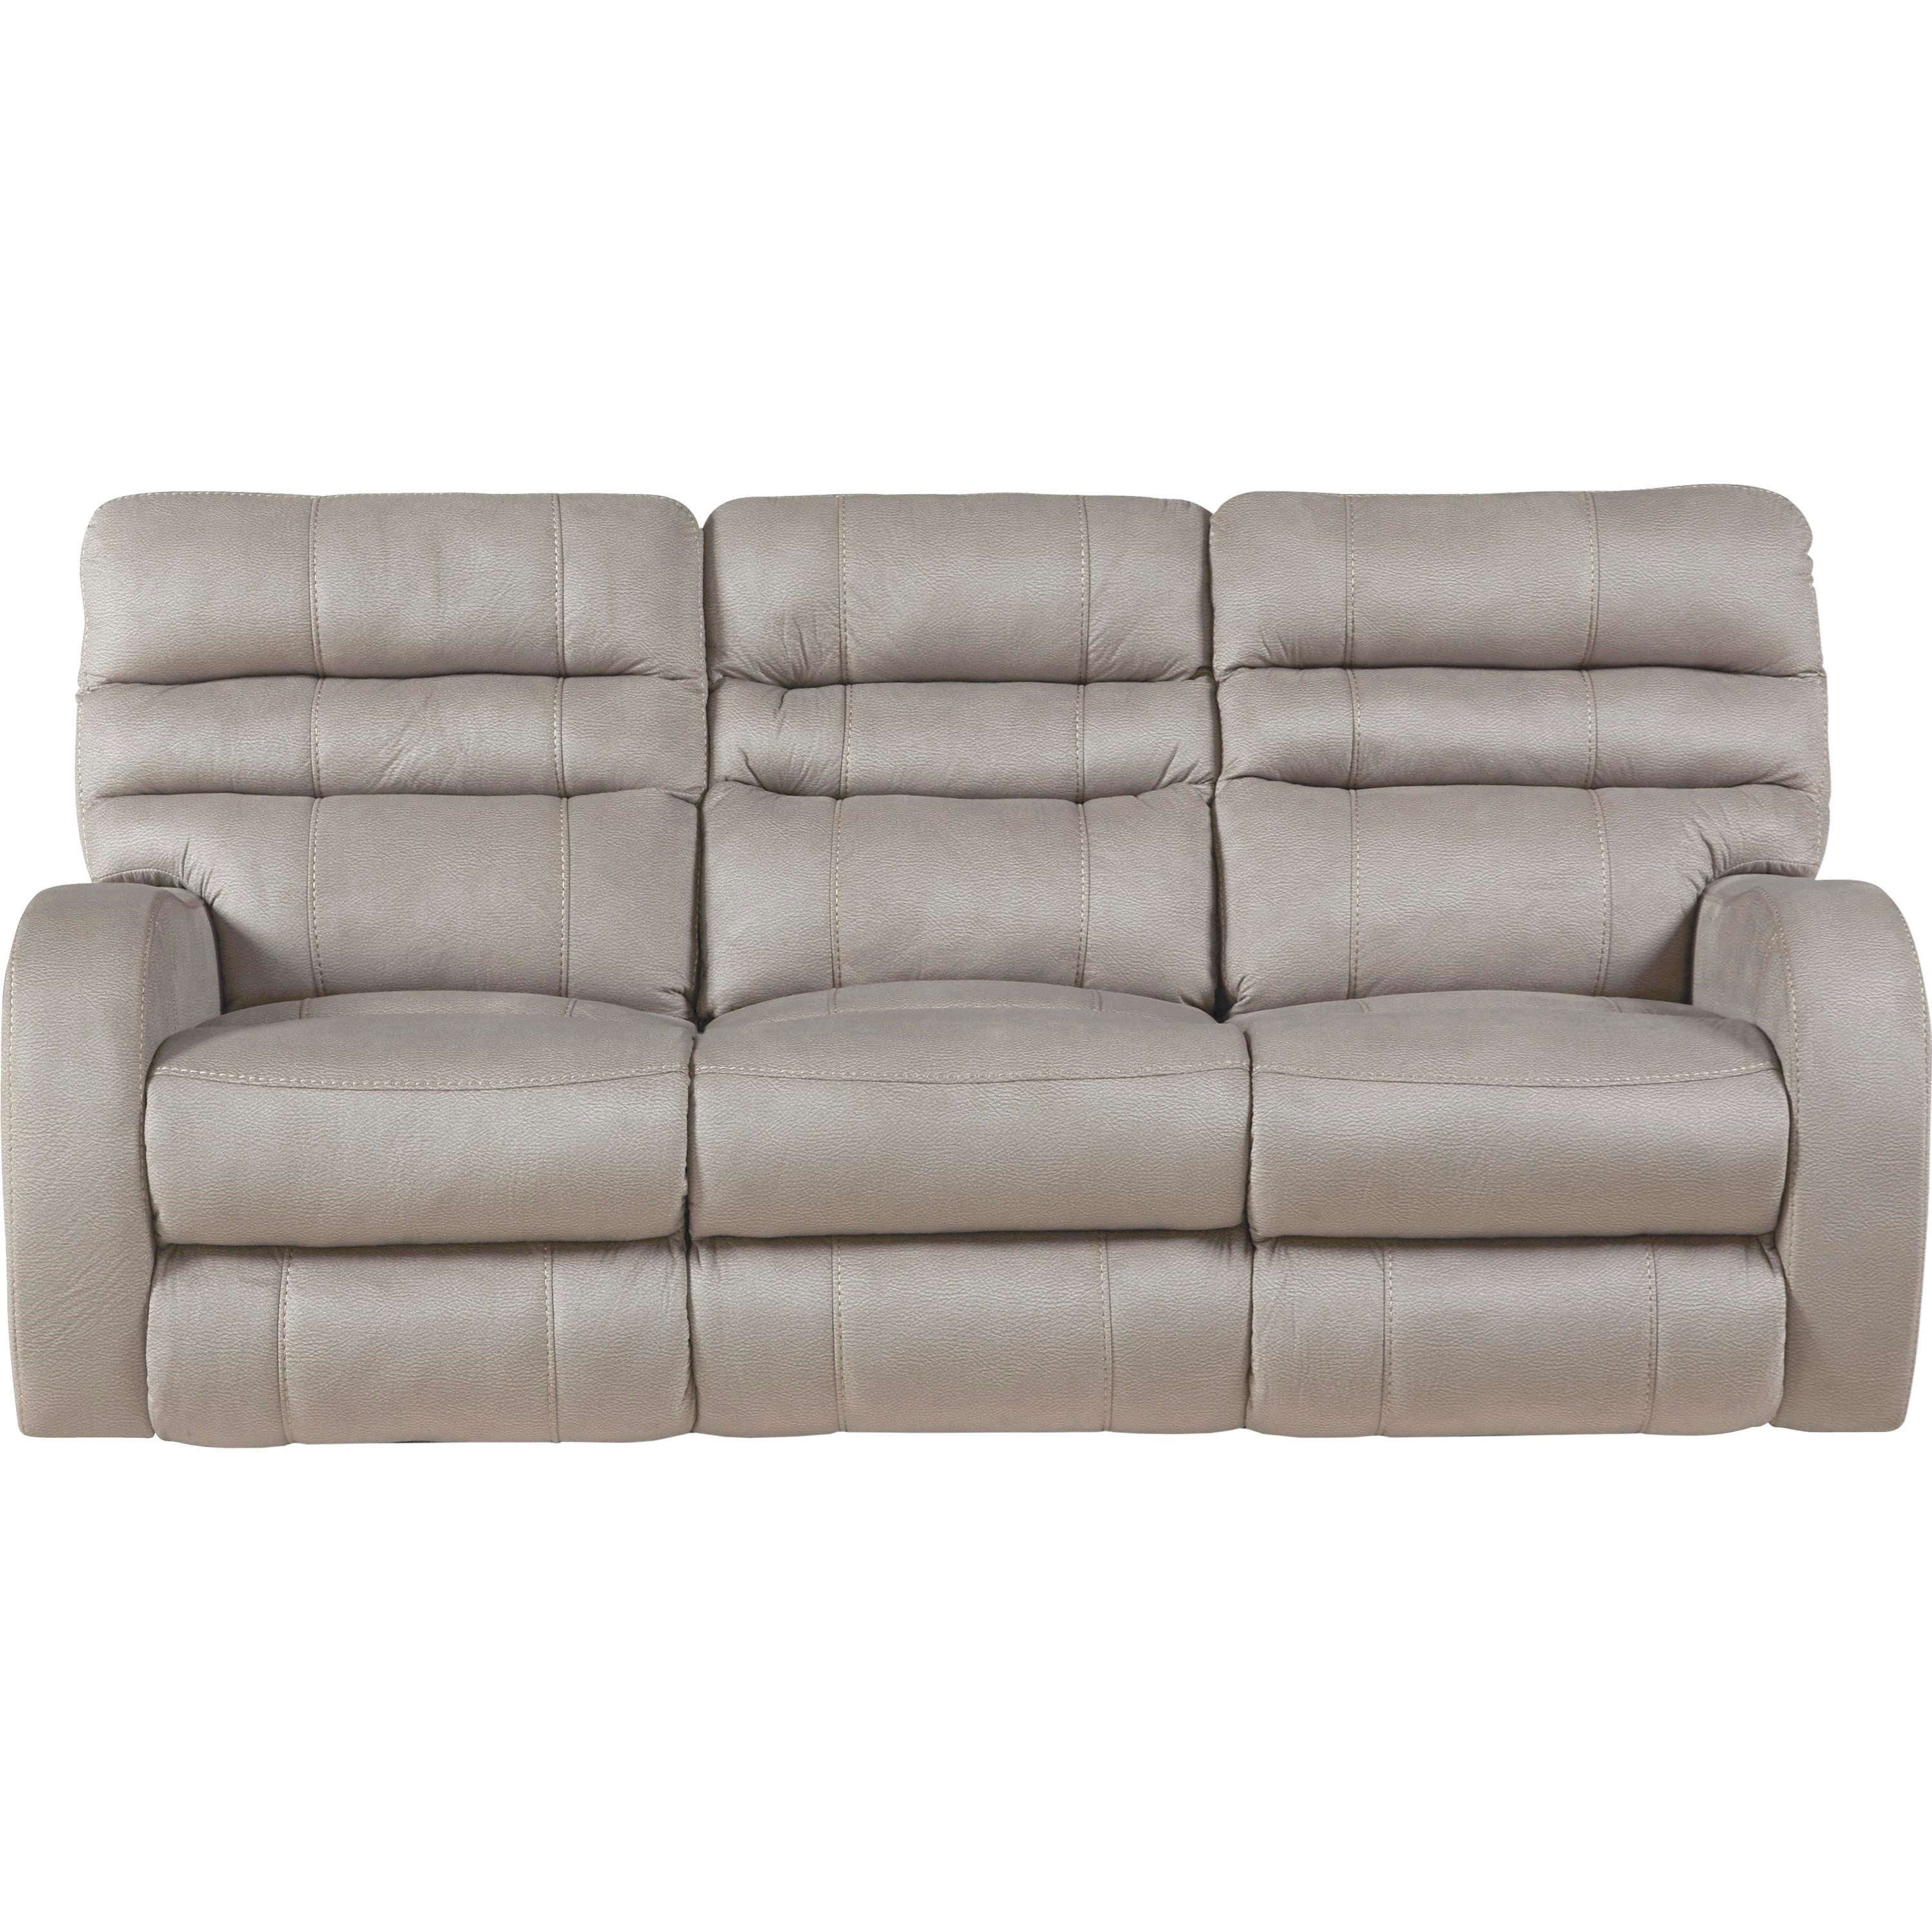 Surprising Kelsey Contemporary Power Lay Flat Reclining Sofa With Power Headrest And Lumbar By Catnapper At Efo Furniture Outlet Beutiful Home Inspiration Papxelindsey Bellcom